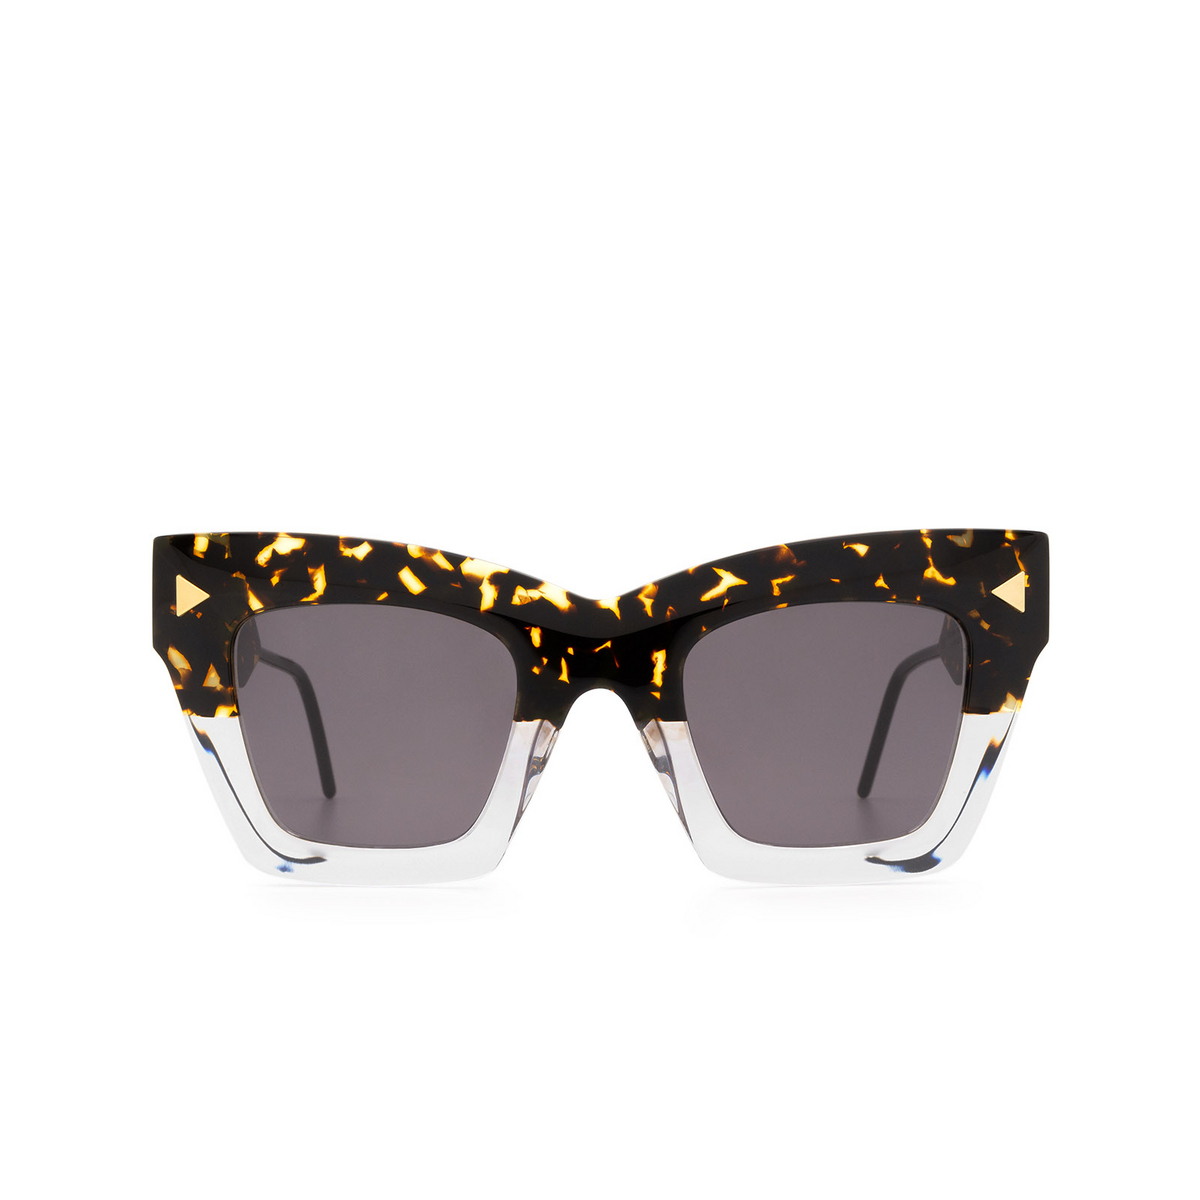 Soya® Square Sunglasses: Victoria color Shiny Havana & Crystal Hsc-fs - front view.